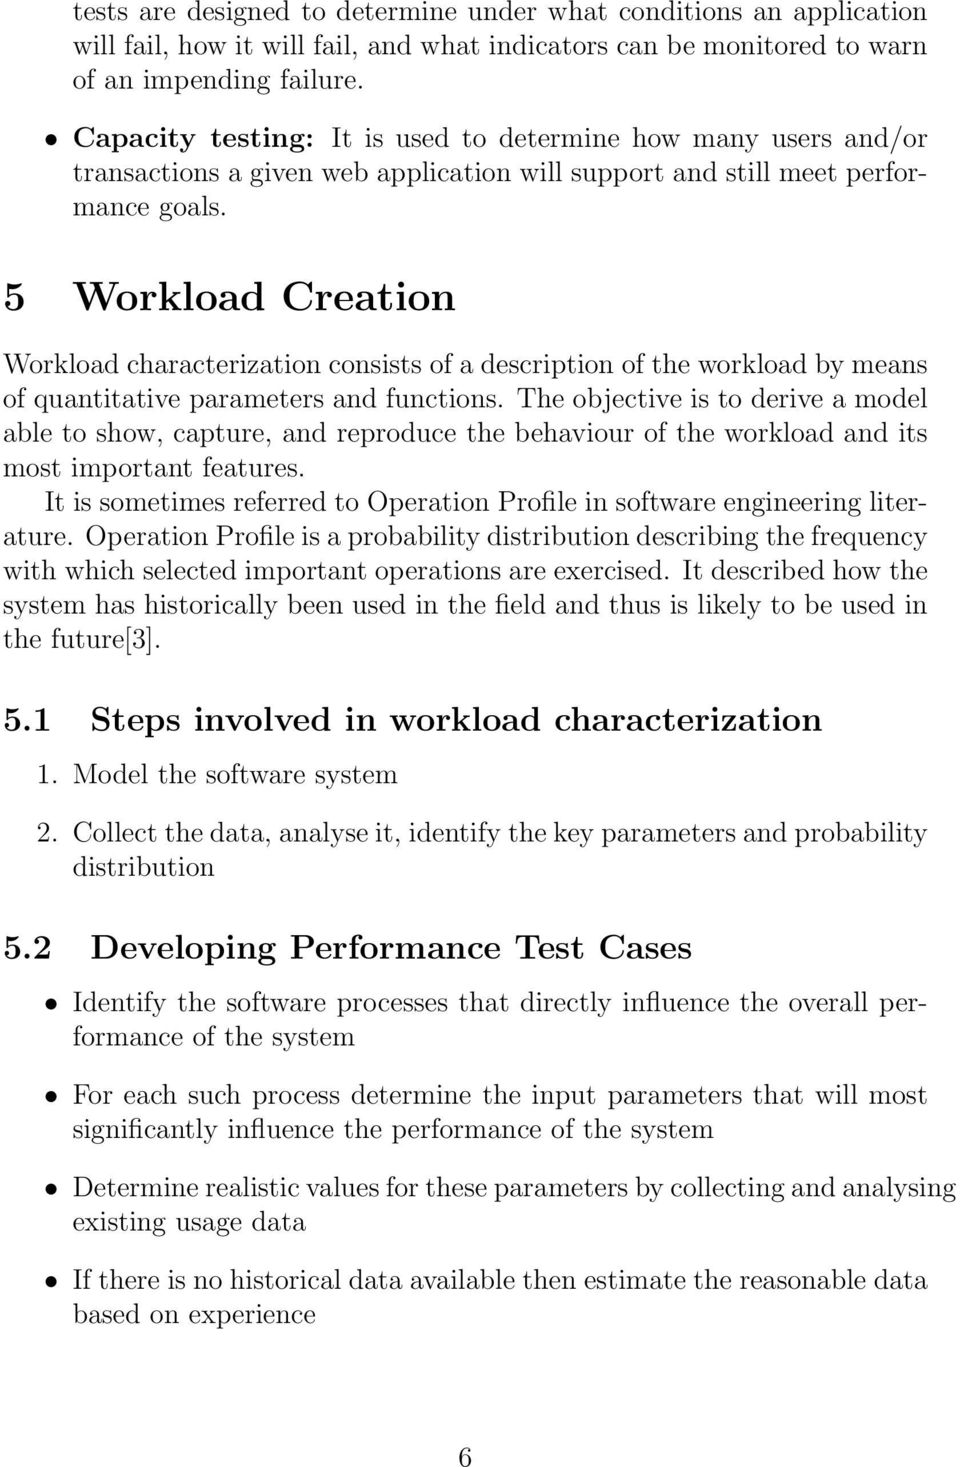 5 Workload Creation Workload characterization consists of a description of the workload by means of quantitative parameters and functions.